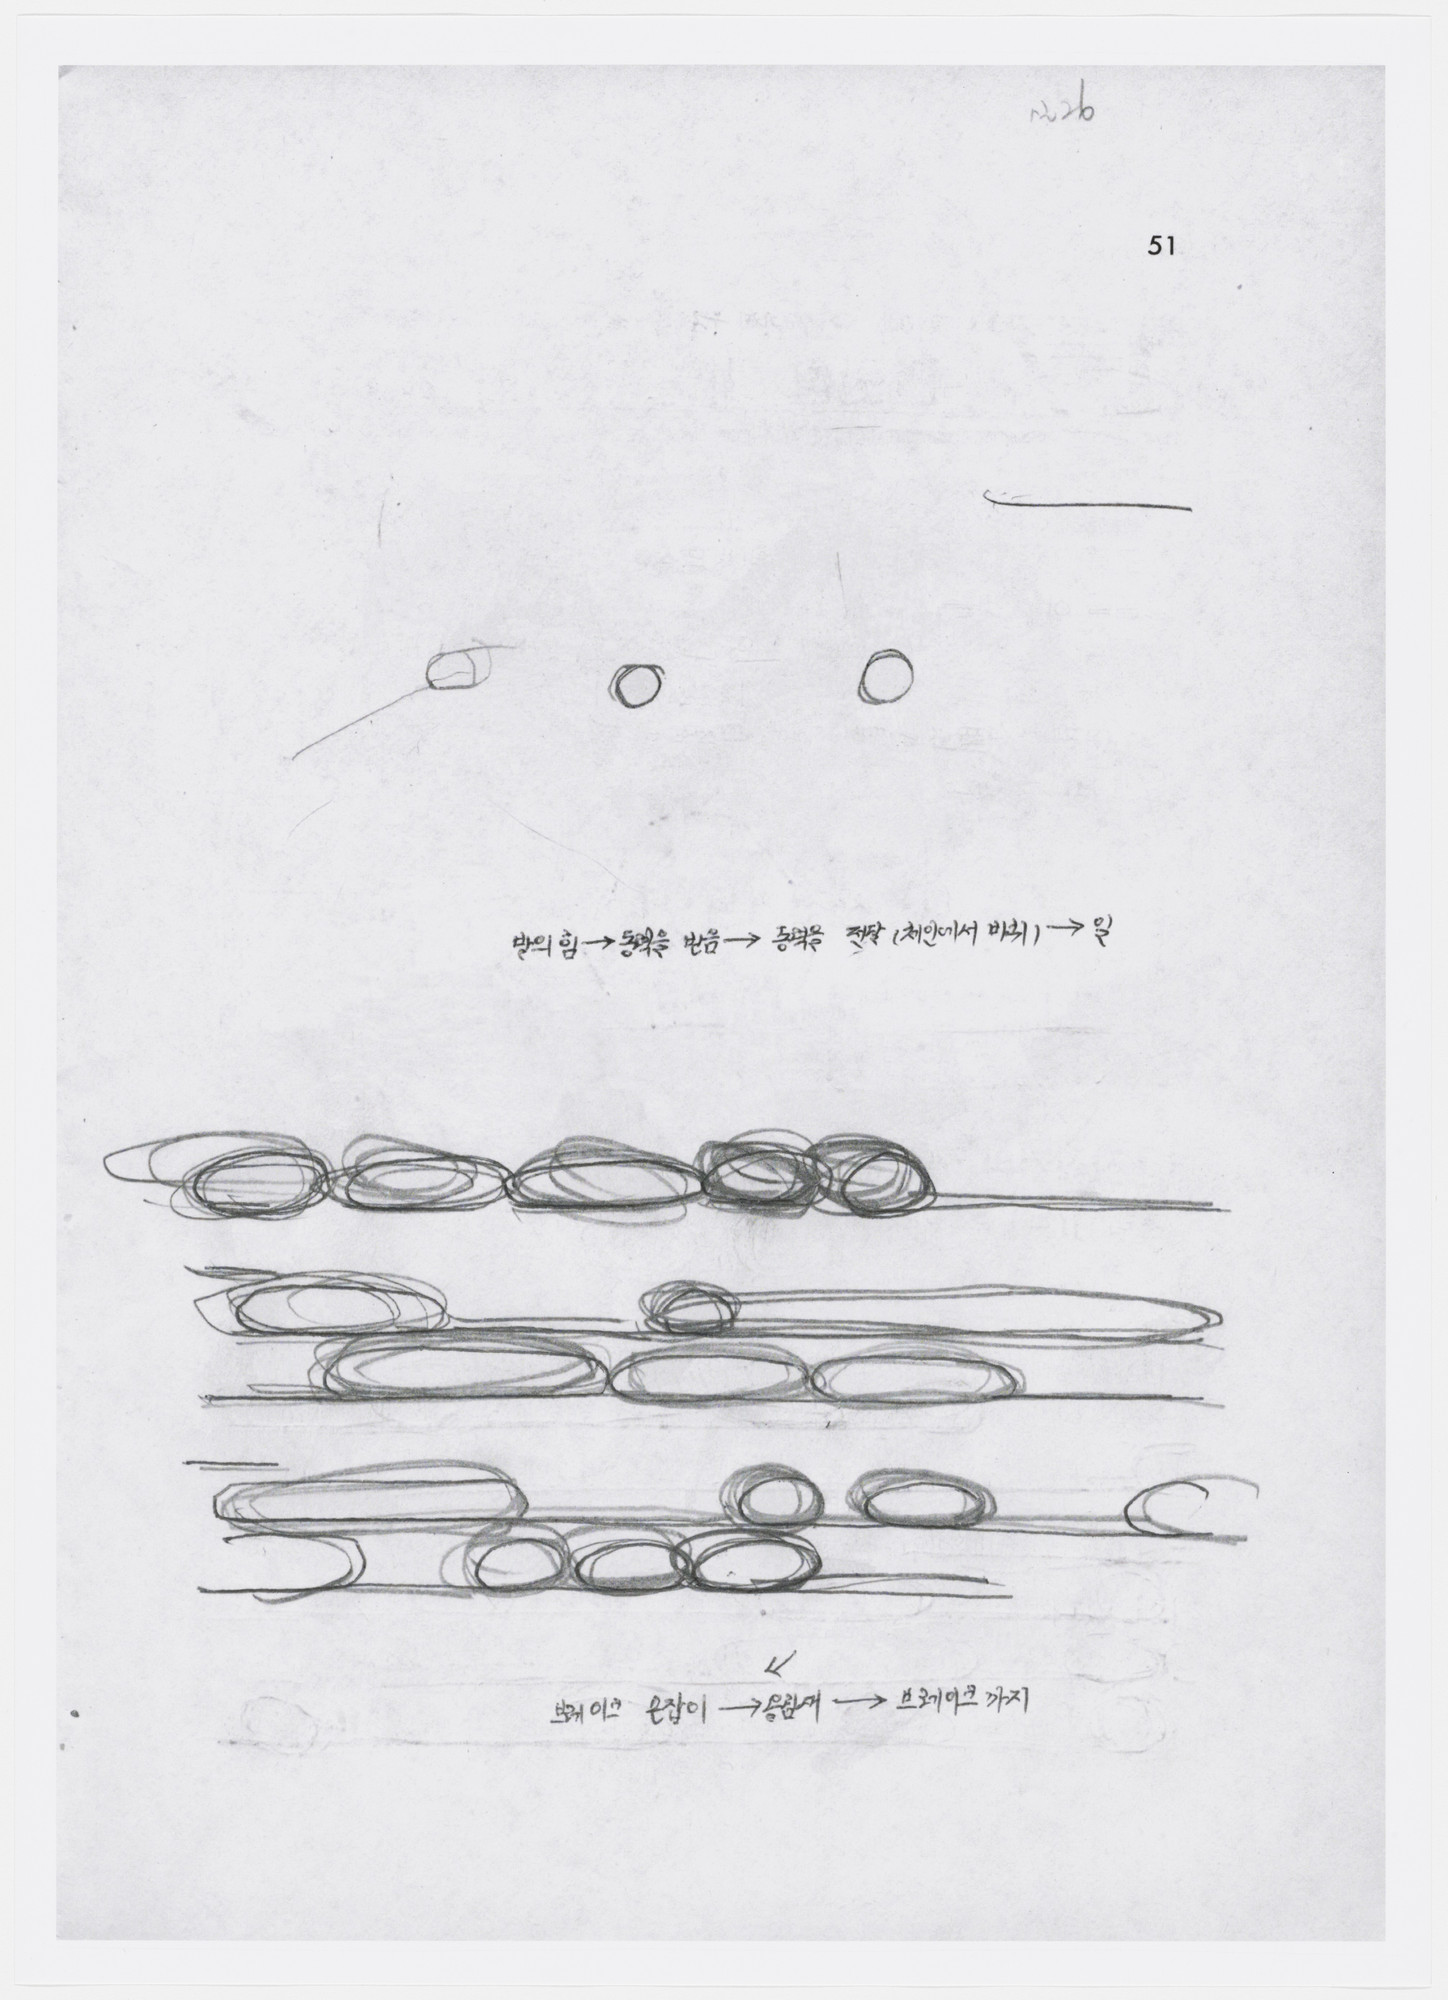 Haegue Yang. Traces of anonymous pupil authors. 2001